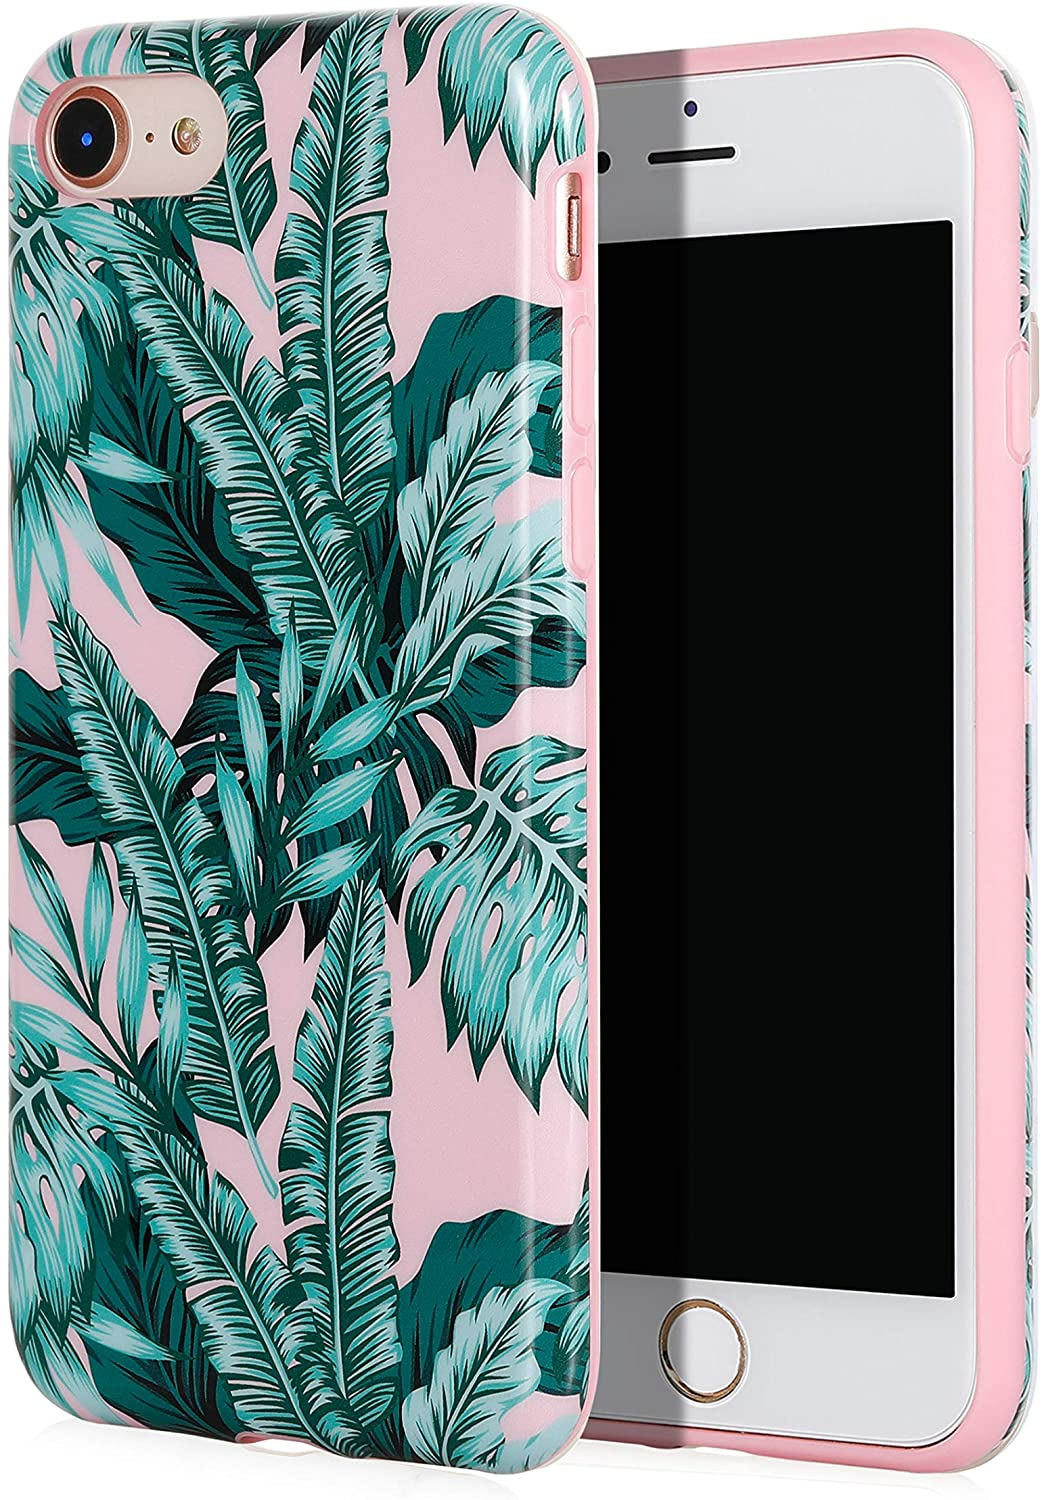 SunshineCases Tropical iPhone Case (Compatible: Apple iPhone SE 2020 / iPhone 8 / iPhone 7 Case) Slim, Cute and Protective Phone Case Cover for Women & Girls, Easy to Grip (Pink Jungle Leaves)